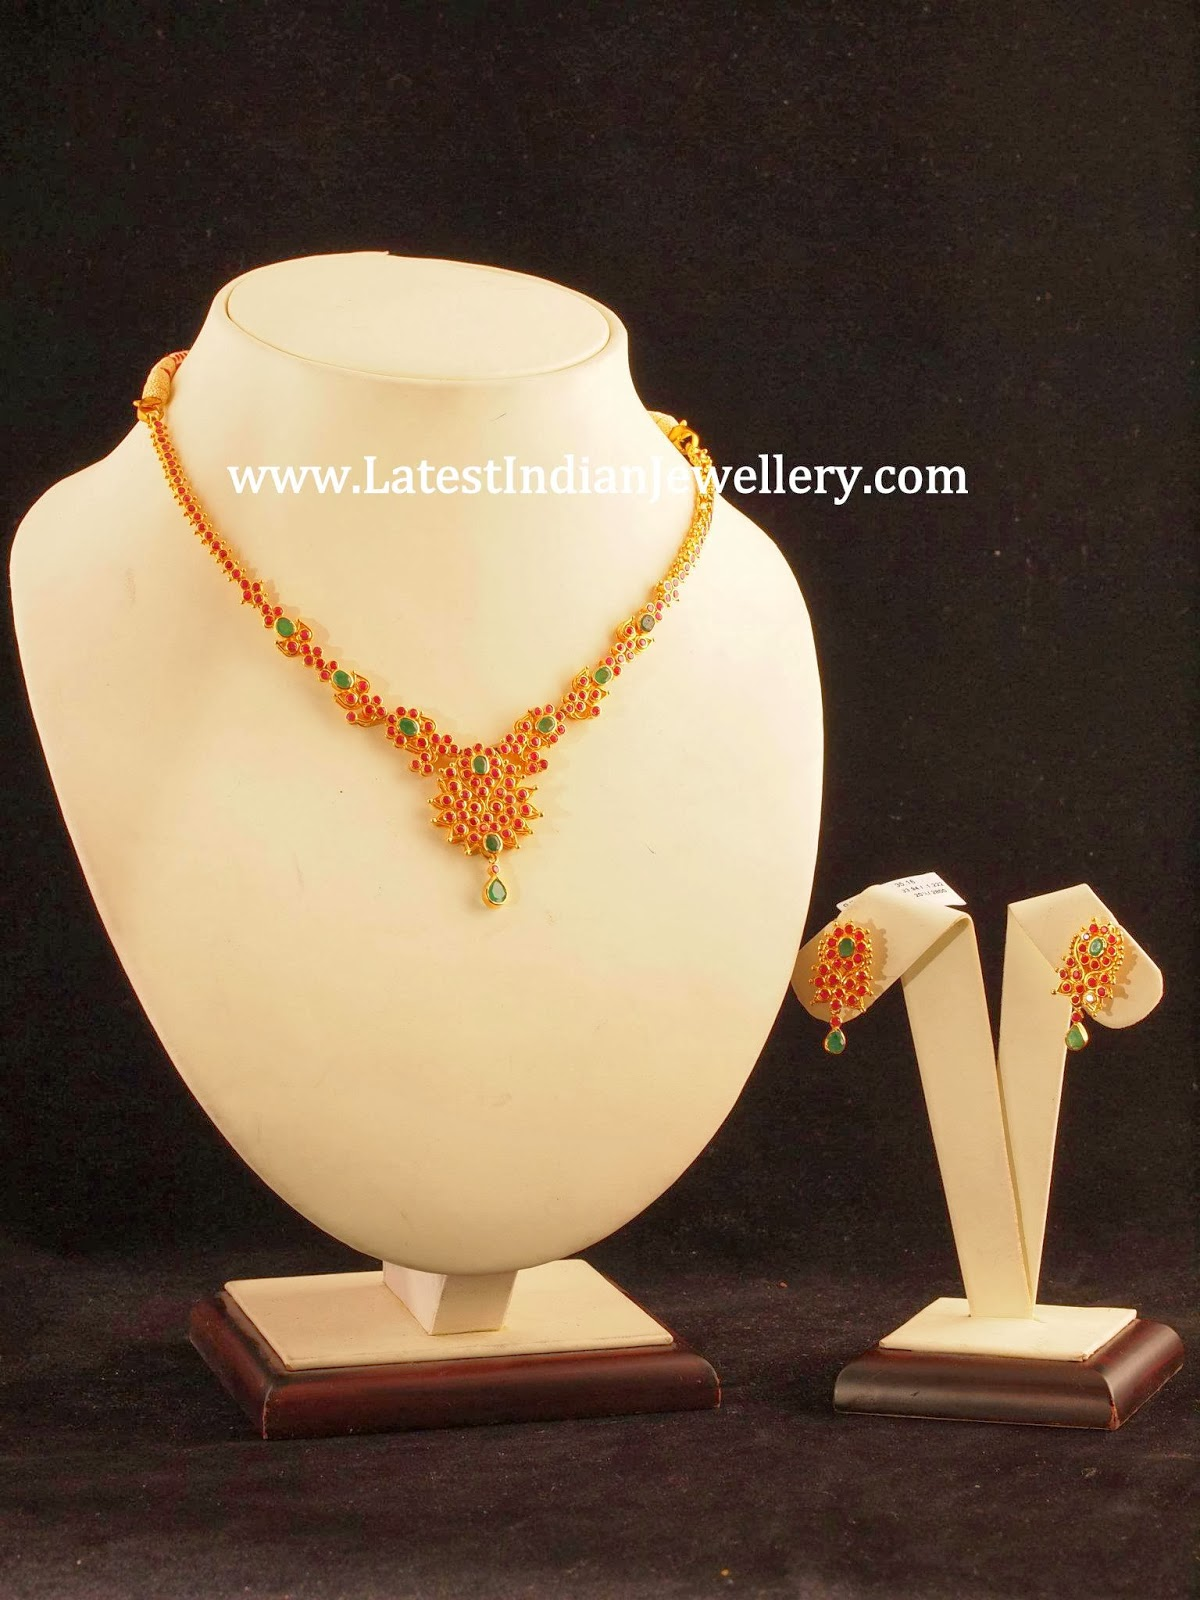 Stunning Ruby Necklace Design